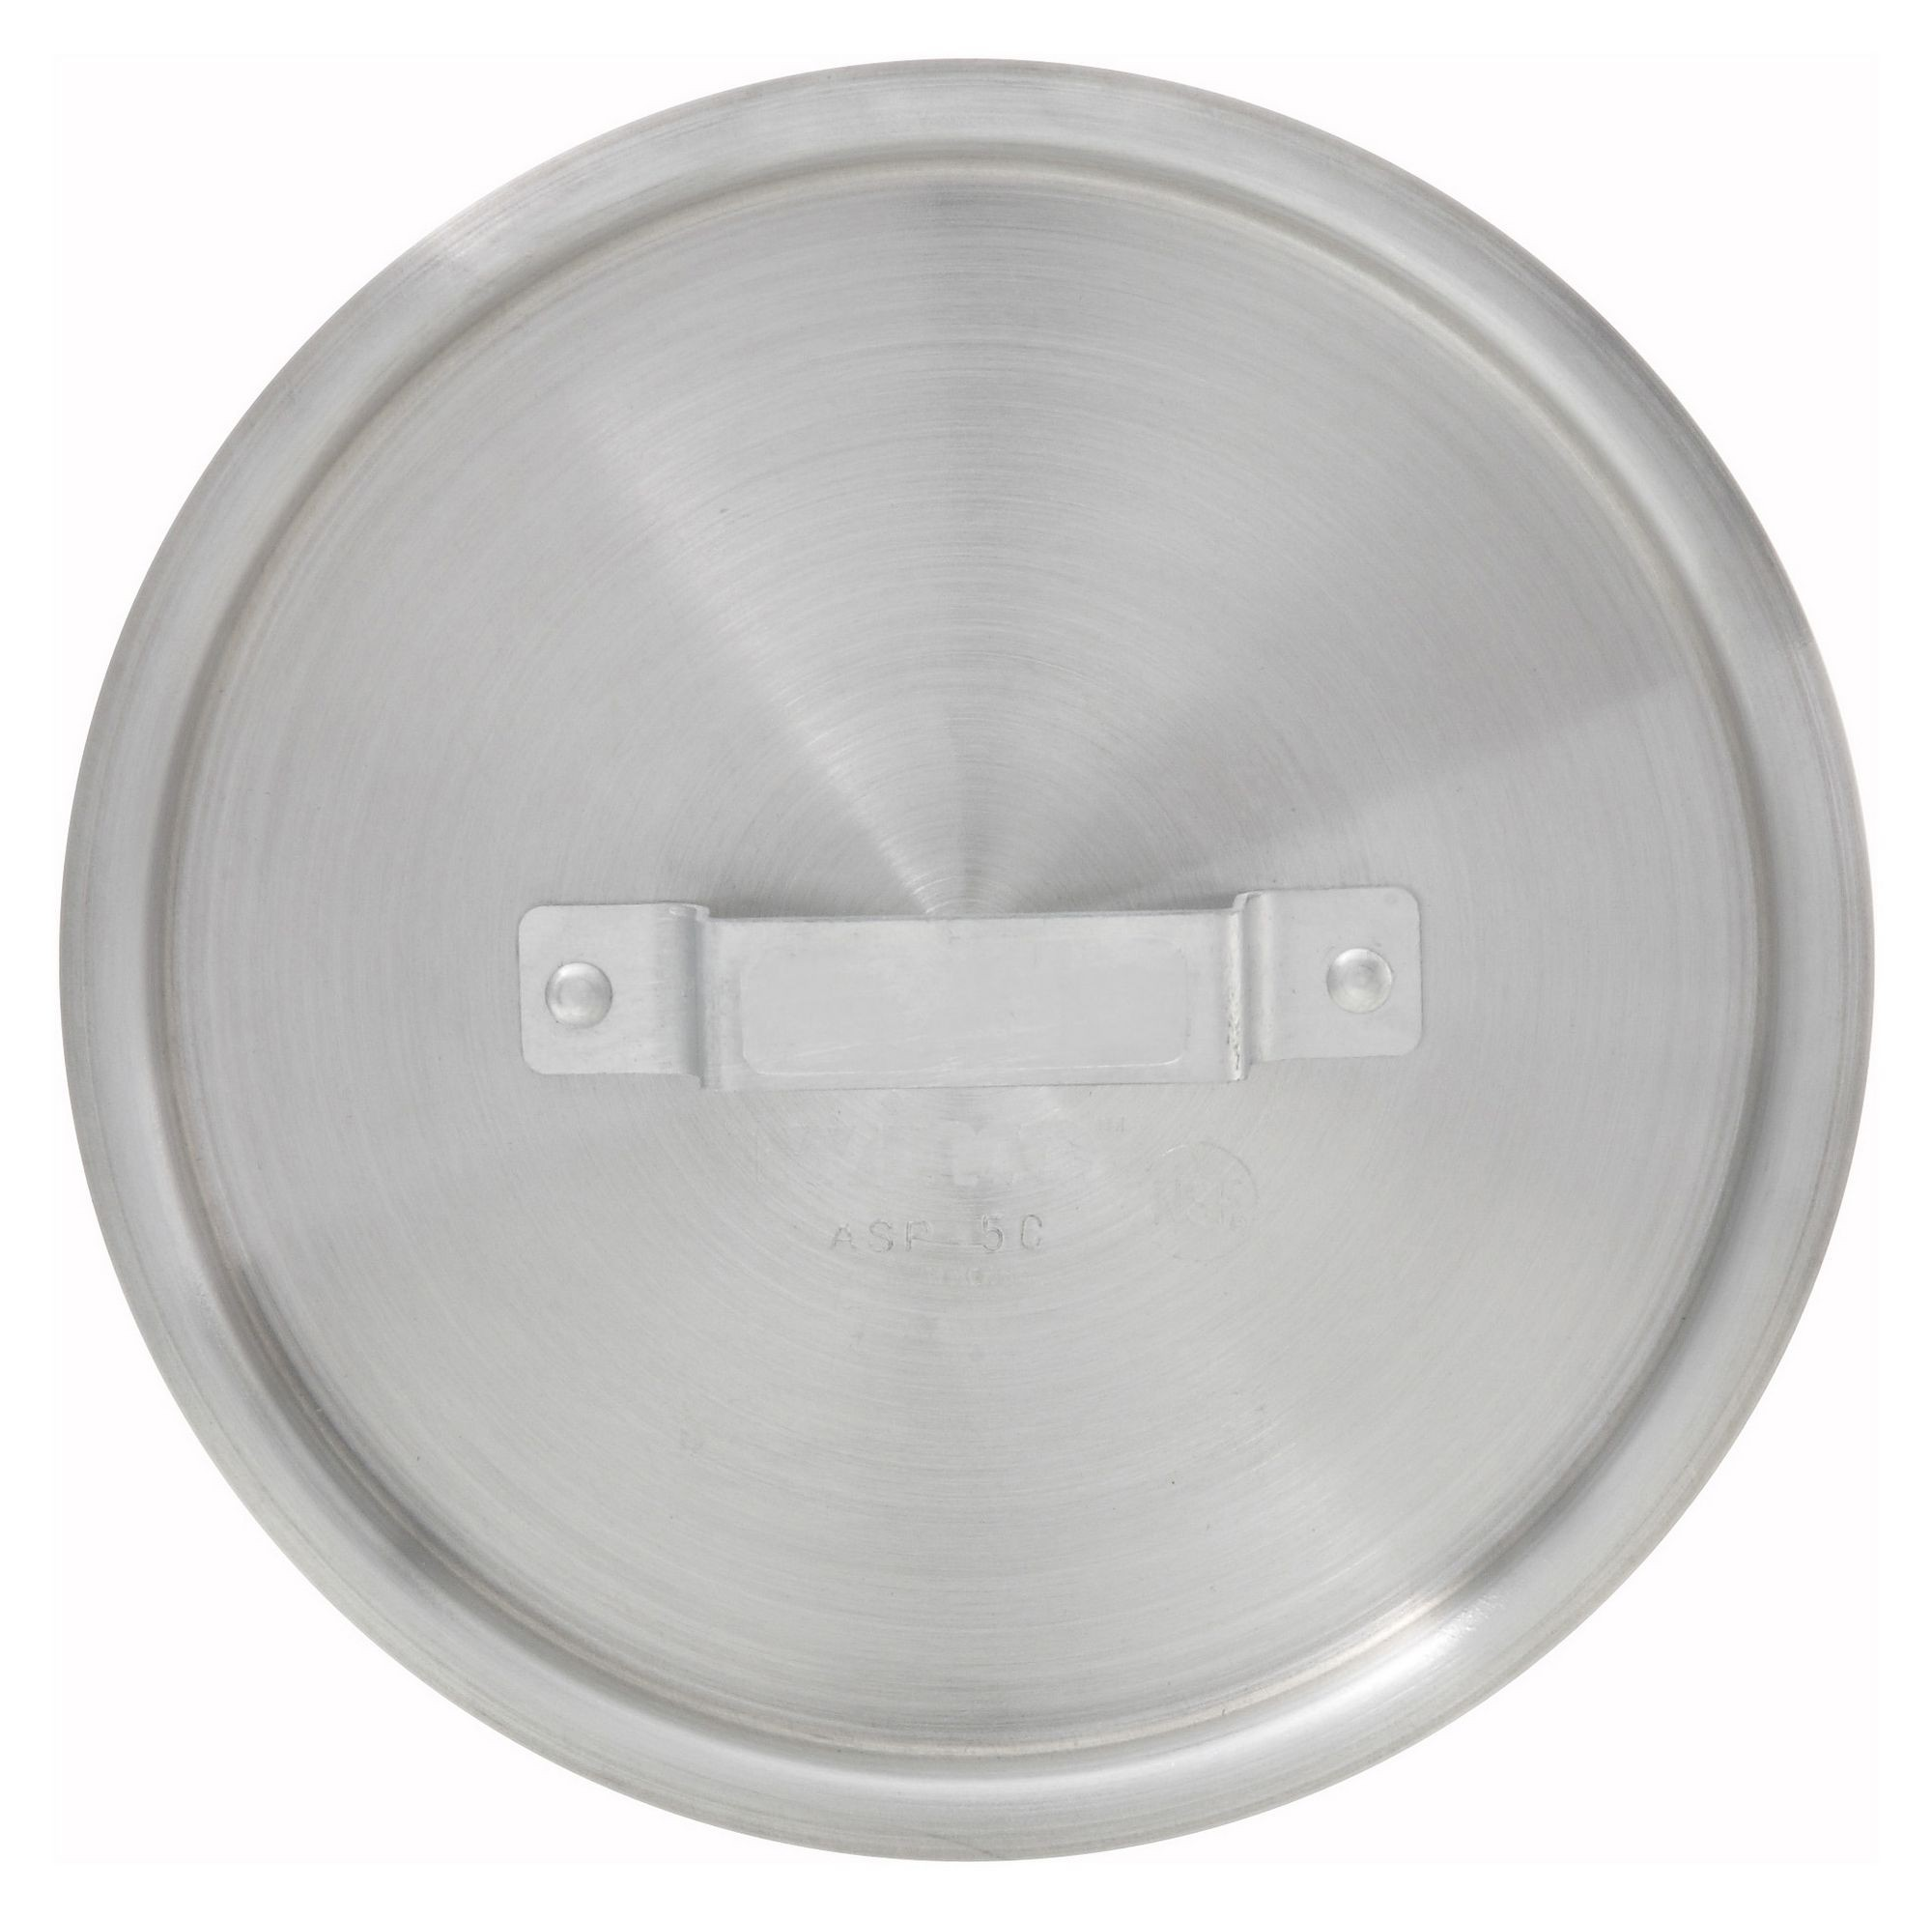 Winco ASP-4C Aluminum Cover for 4-1/4 Qt. Sauce Pan